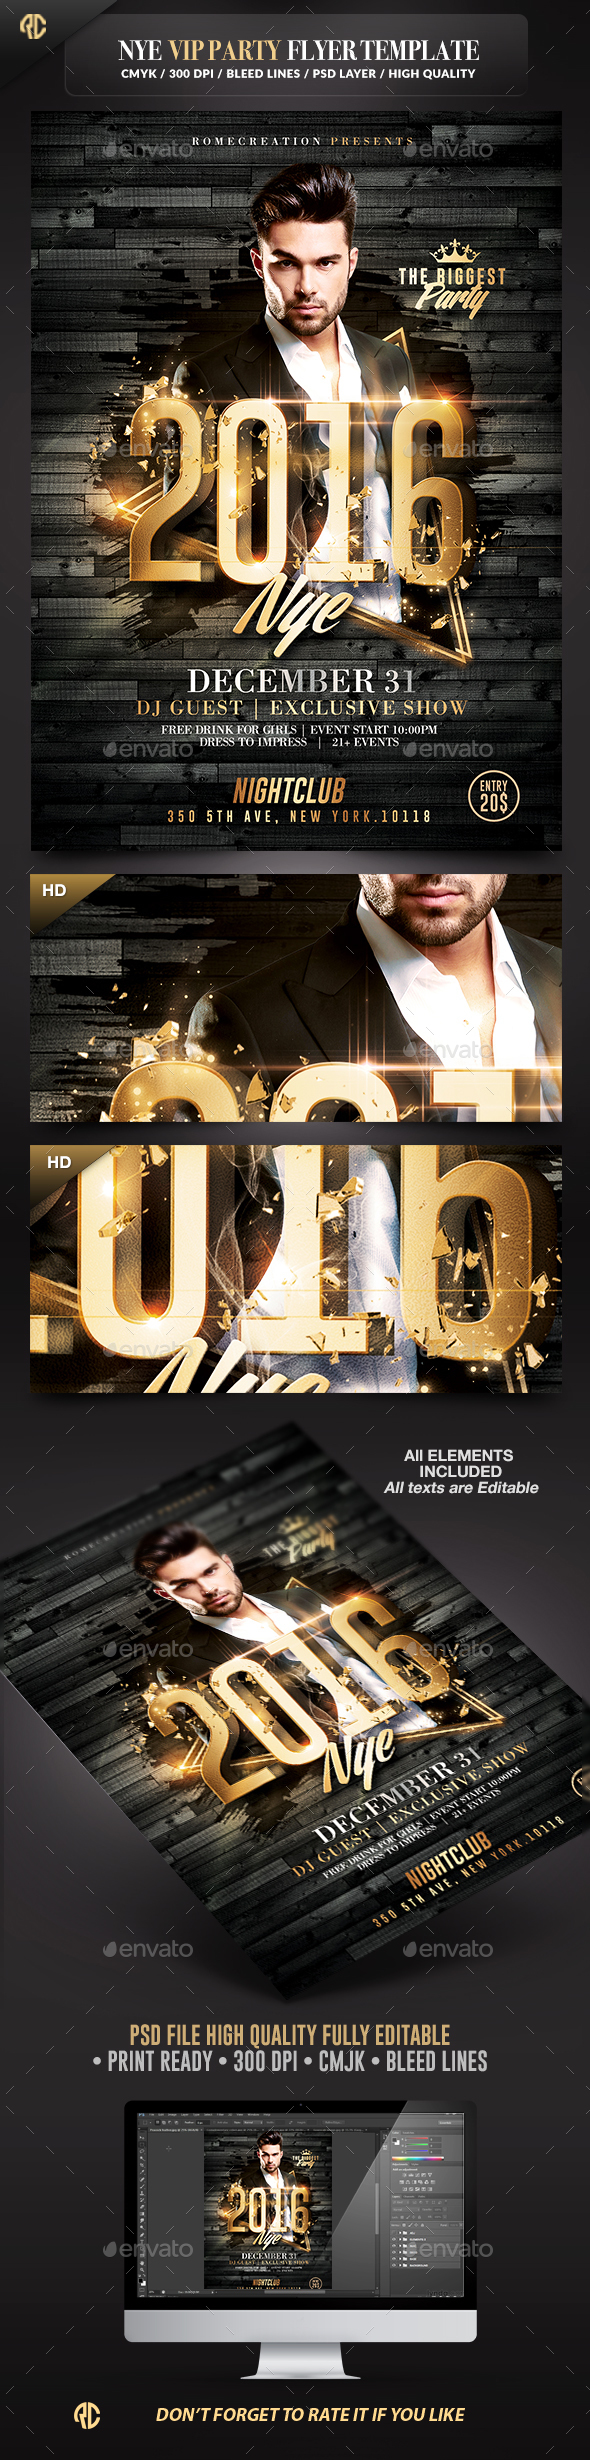 NYE Vip Party | Gold Flyer Template - Events Flyers